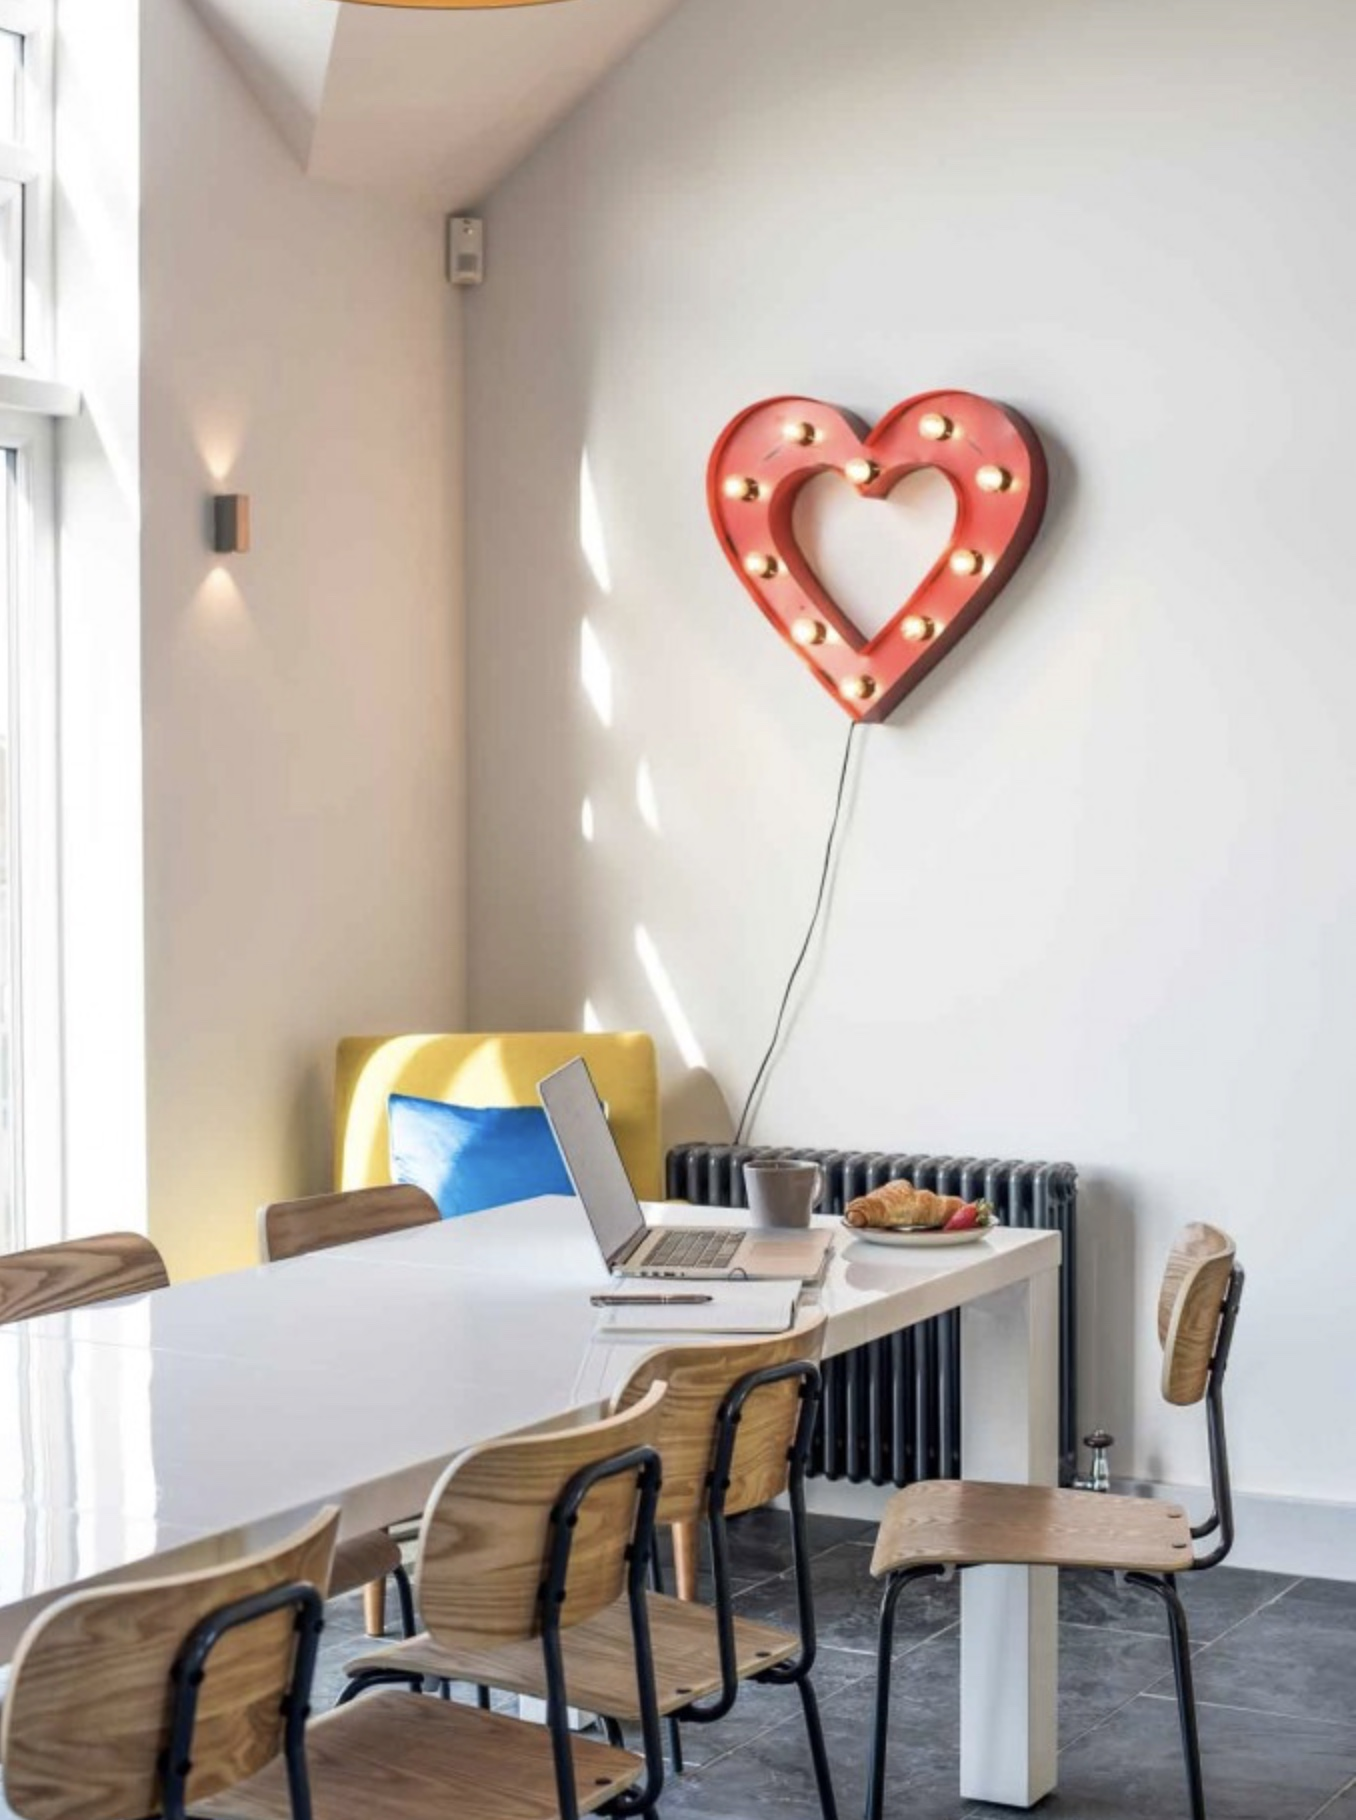 Dining room at Surf Six with wood and yellow chairs and a spotlight red metal heart hanging on the wall